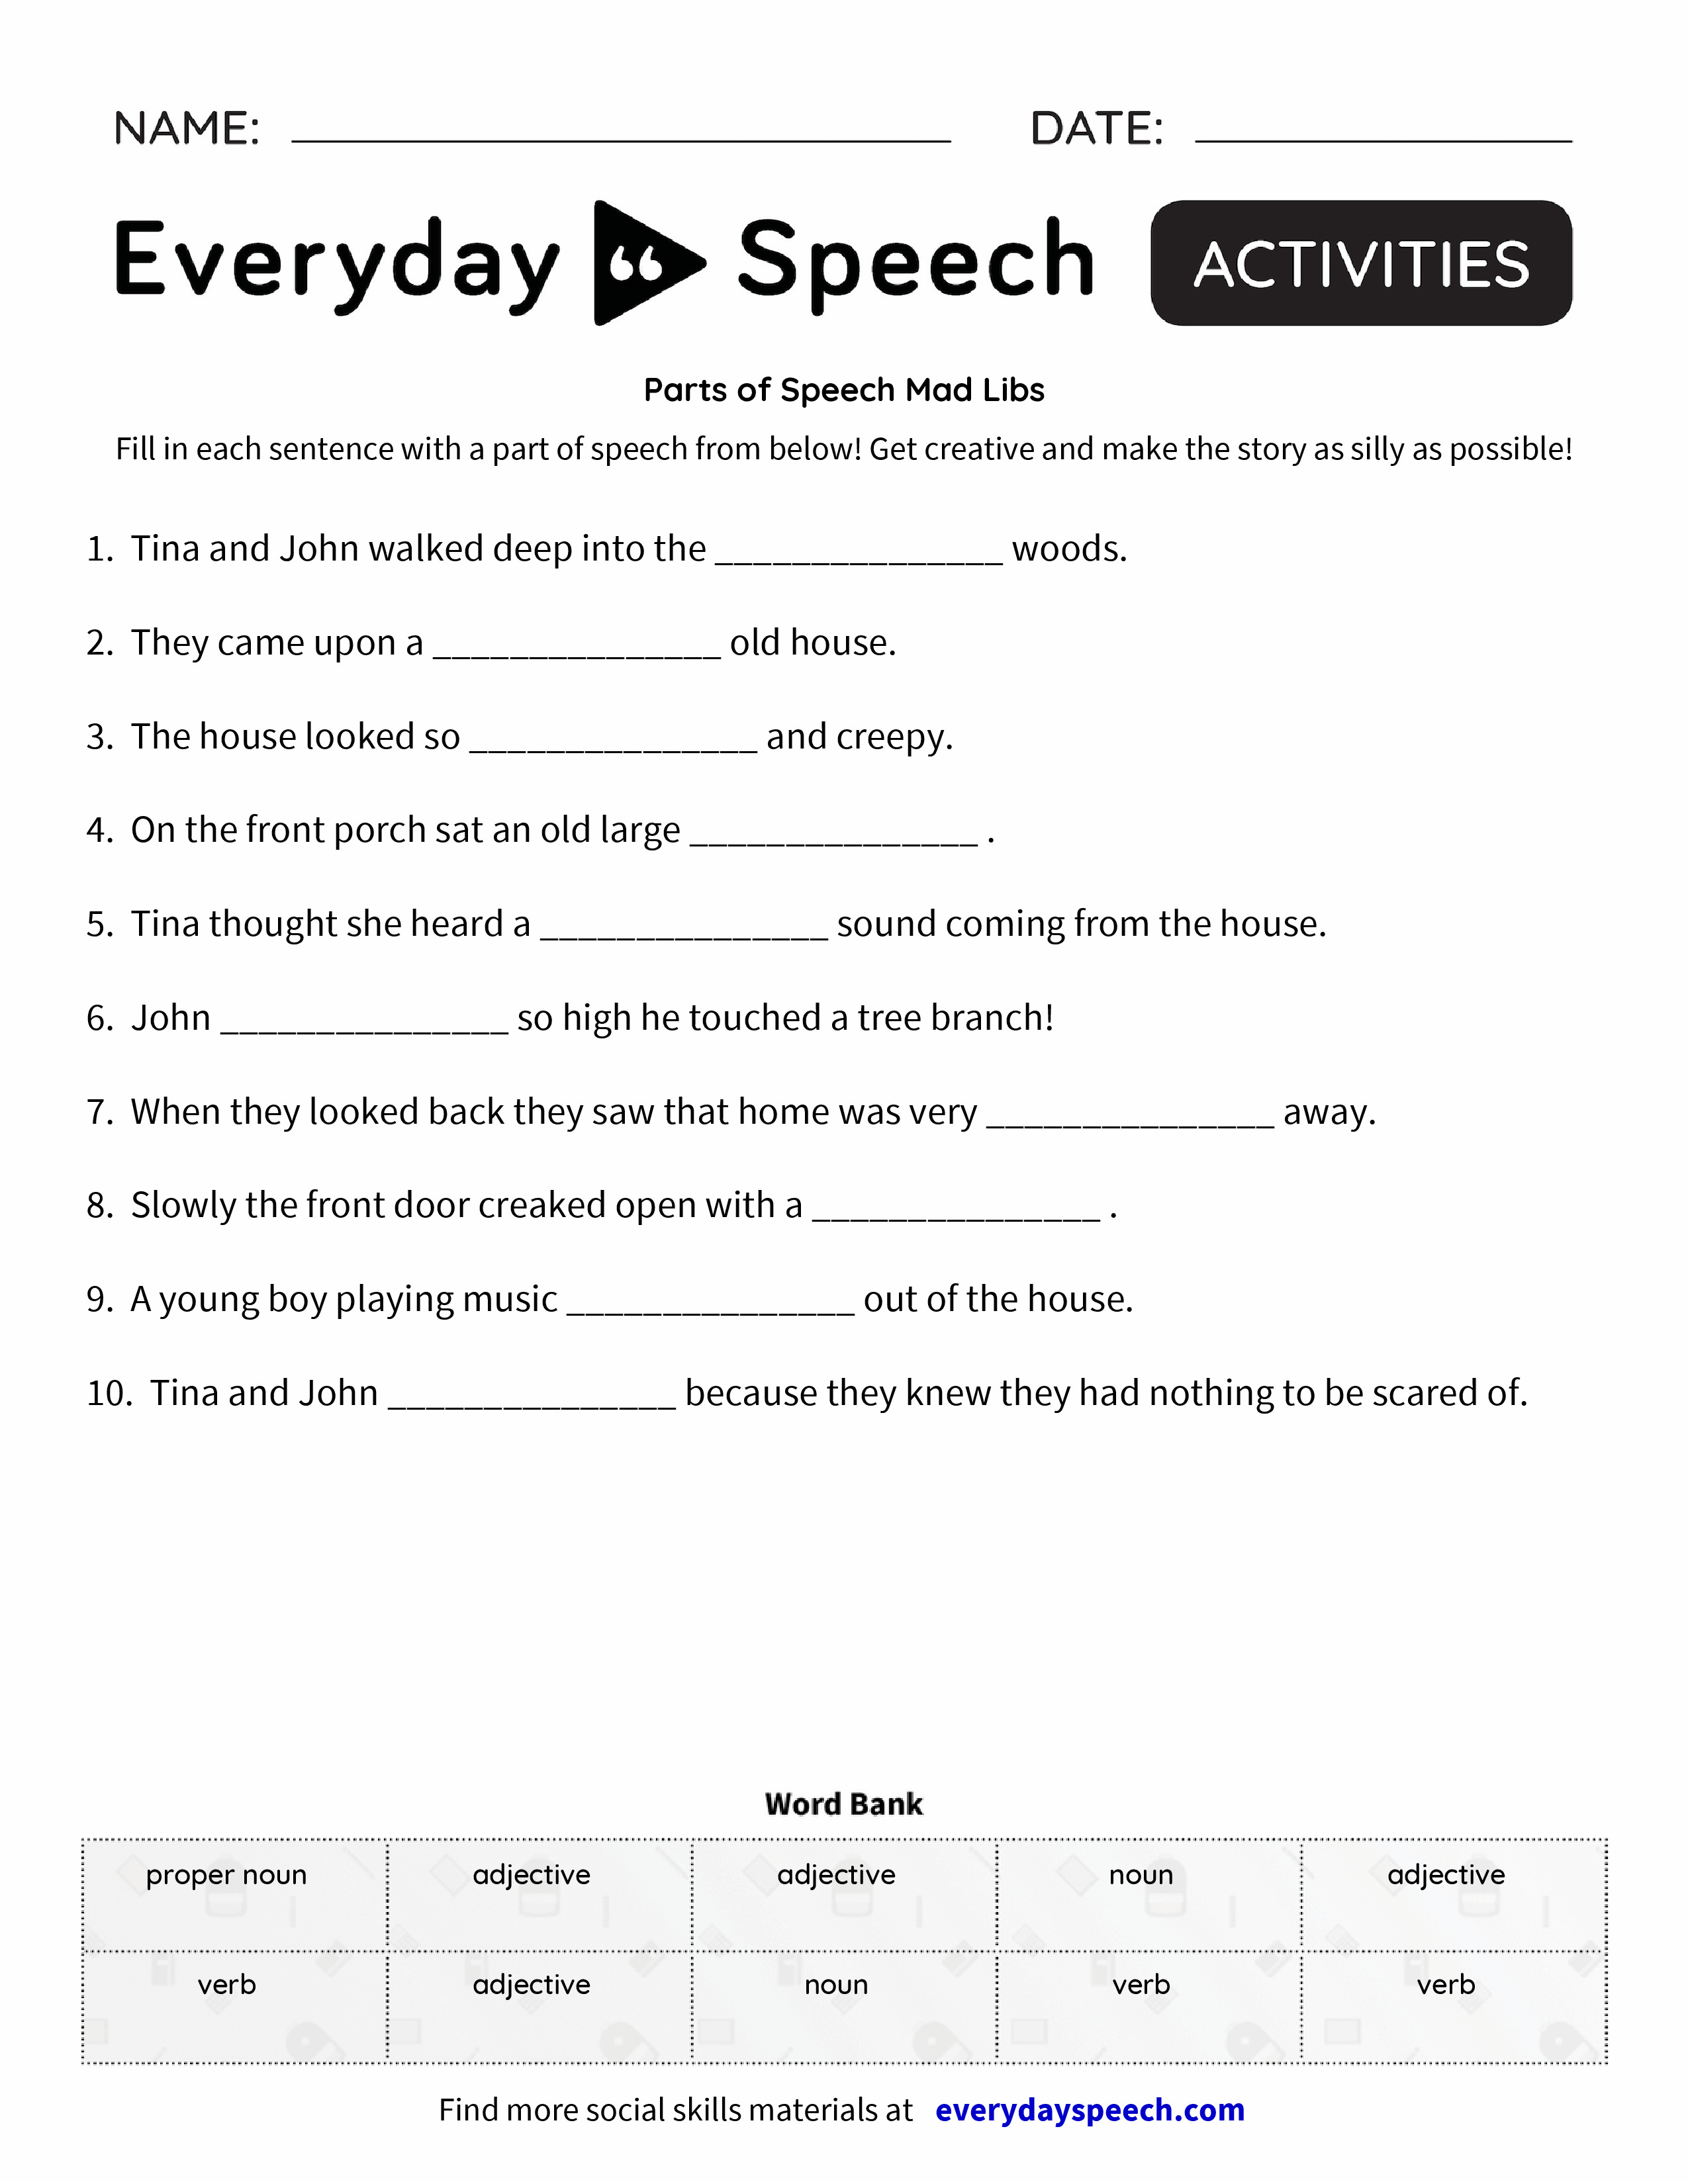 parts of speech mad libs everyday speech everyday speech. Black Bedroom Furniture Sets. Home Design Ideas